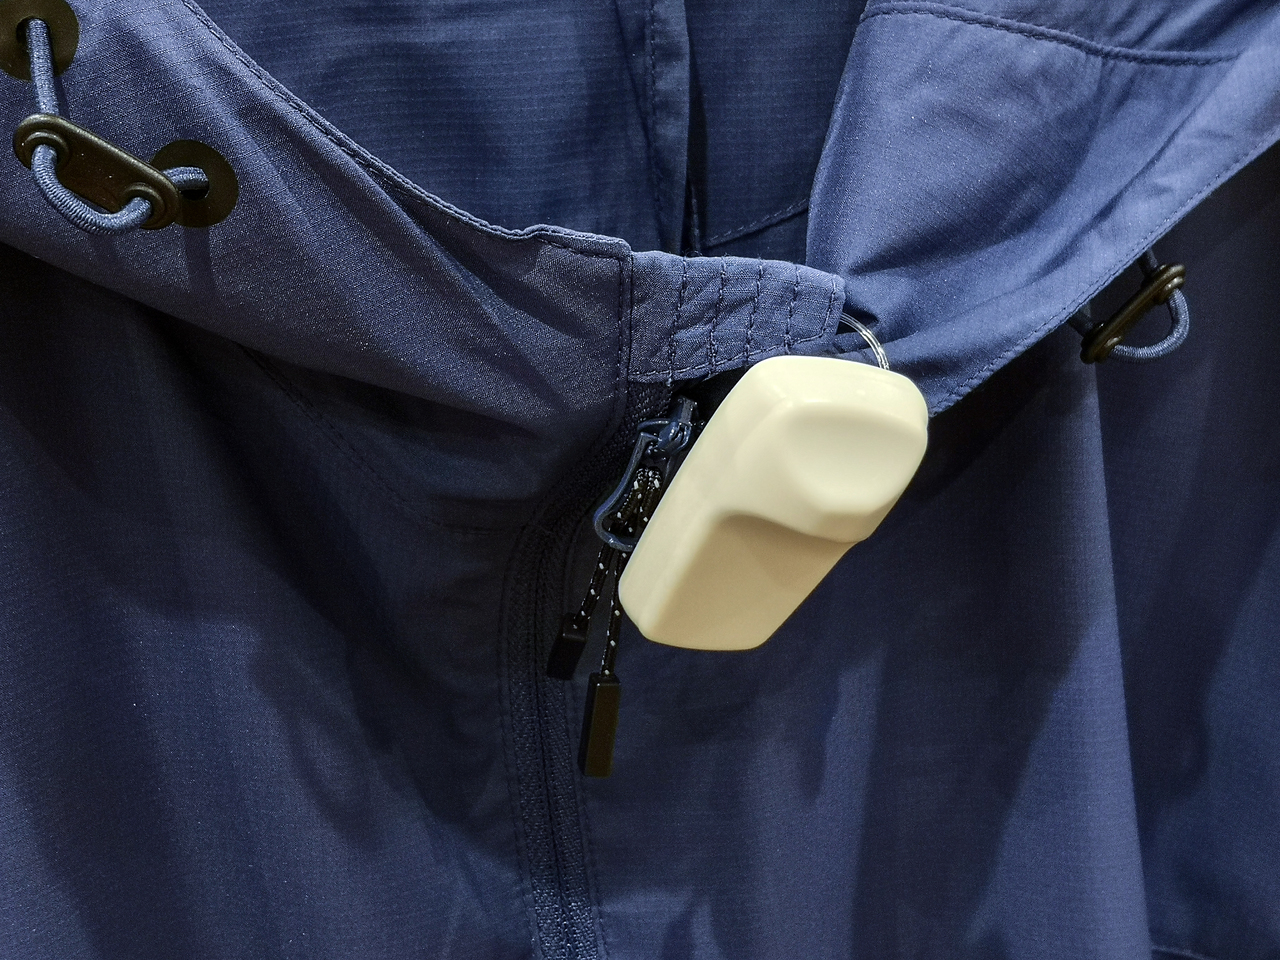 An RFID tag on a pair of pants